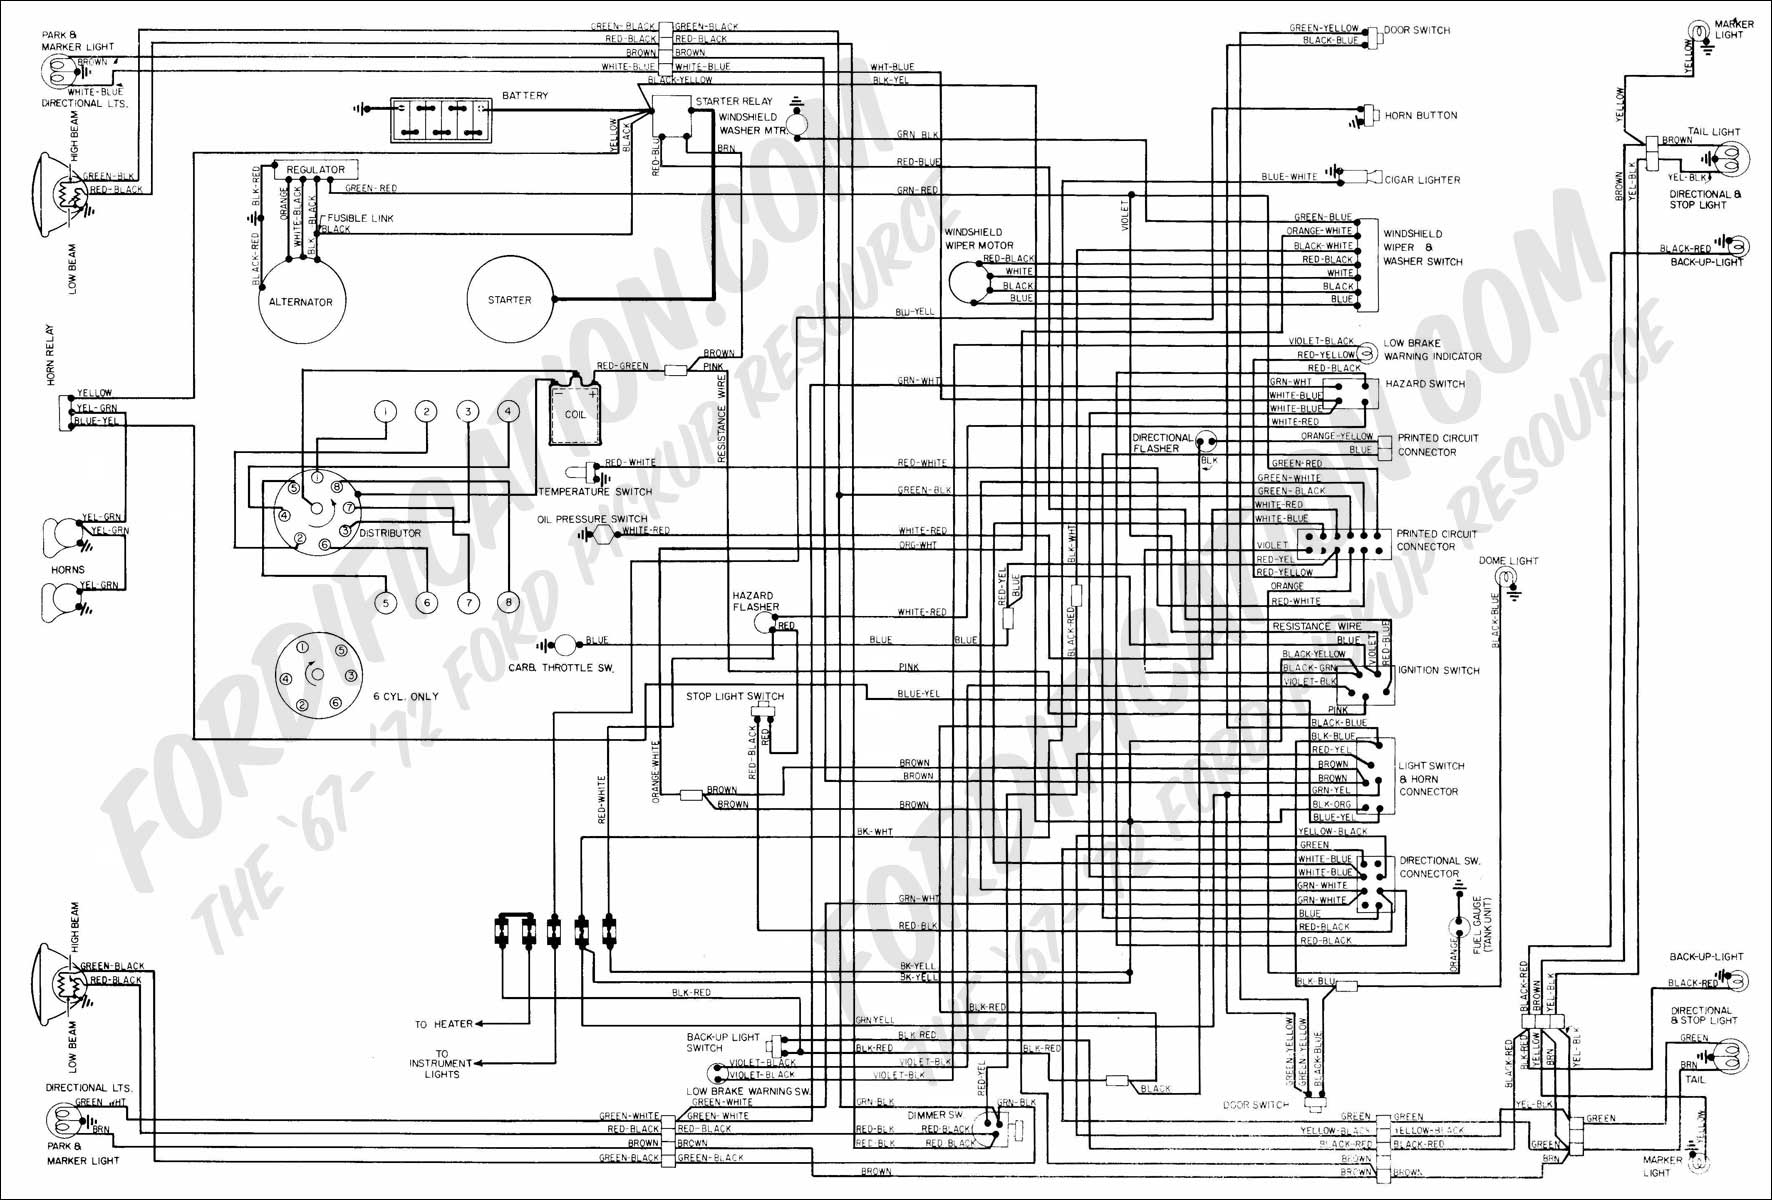 wiring diagram 72_quick 2005 ford f 150 ke wiring diagram wiring diagram simonand 2006 ford f150 wiring diagram at suagrazia.org